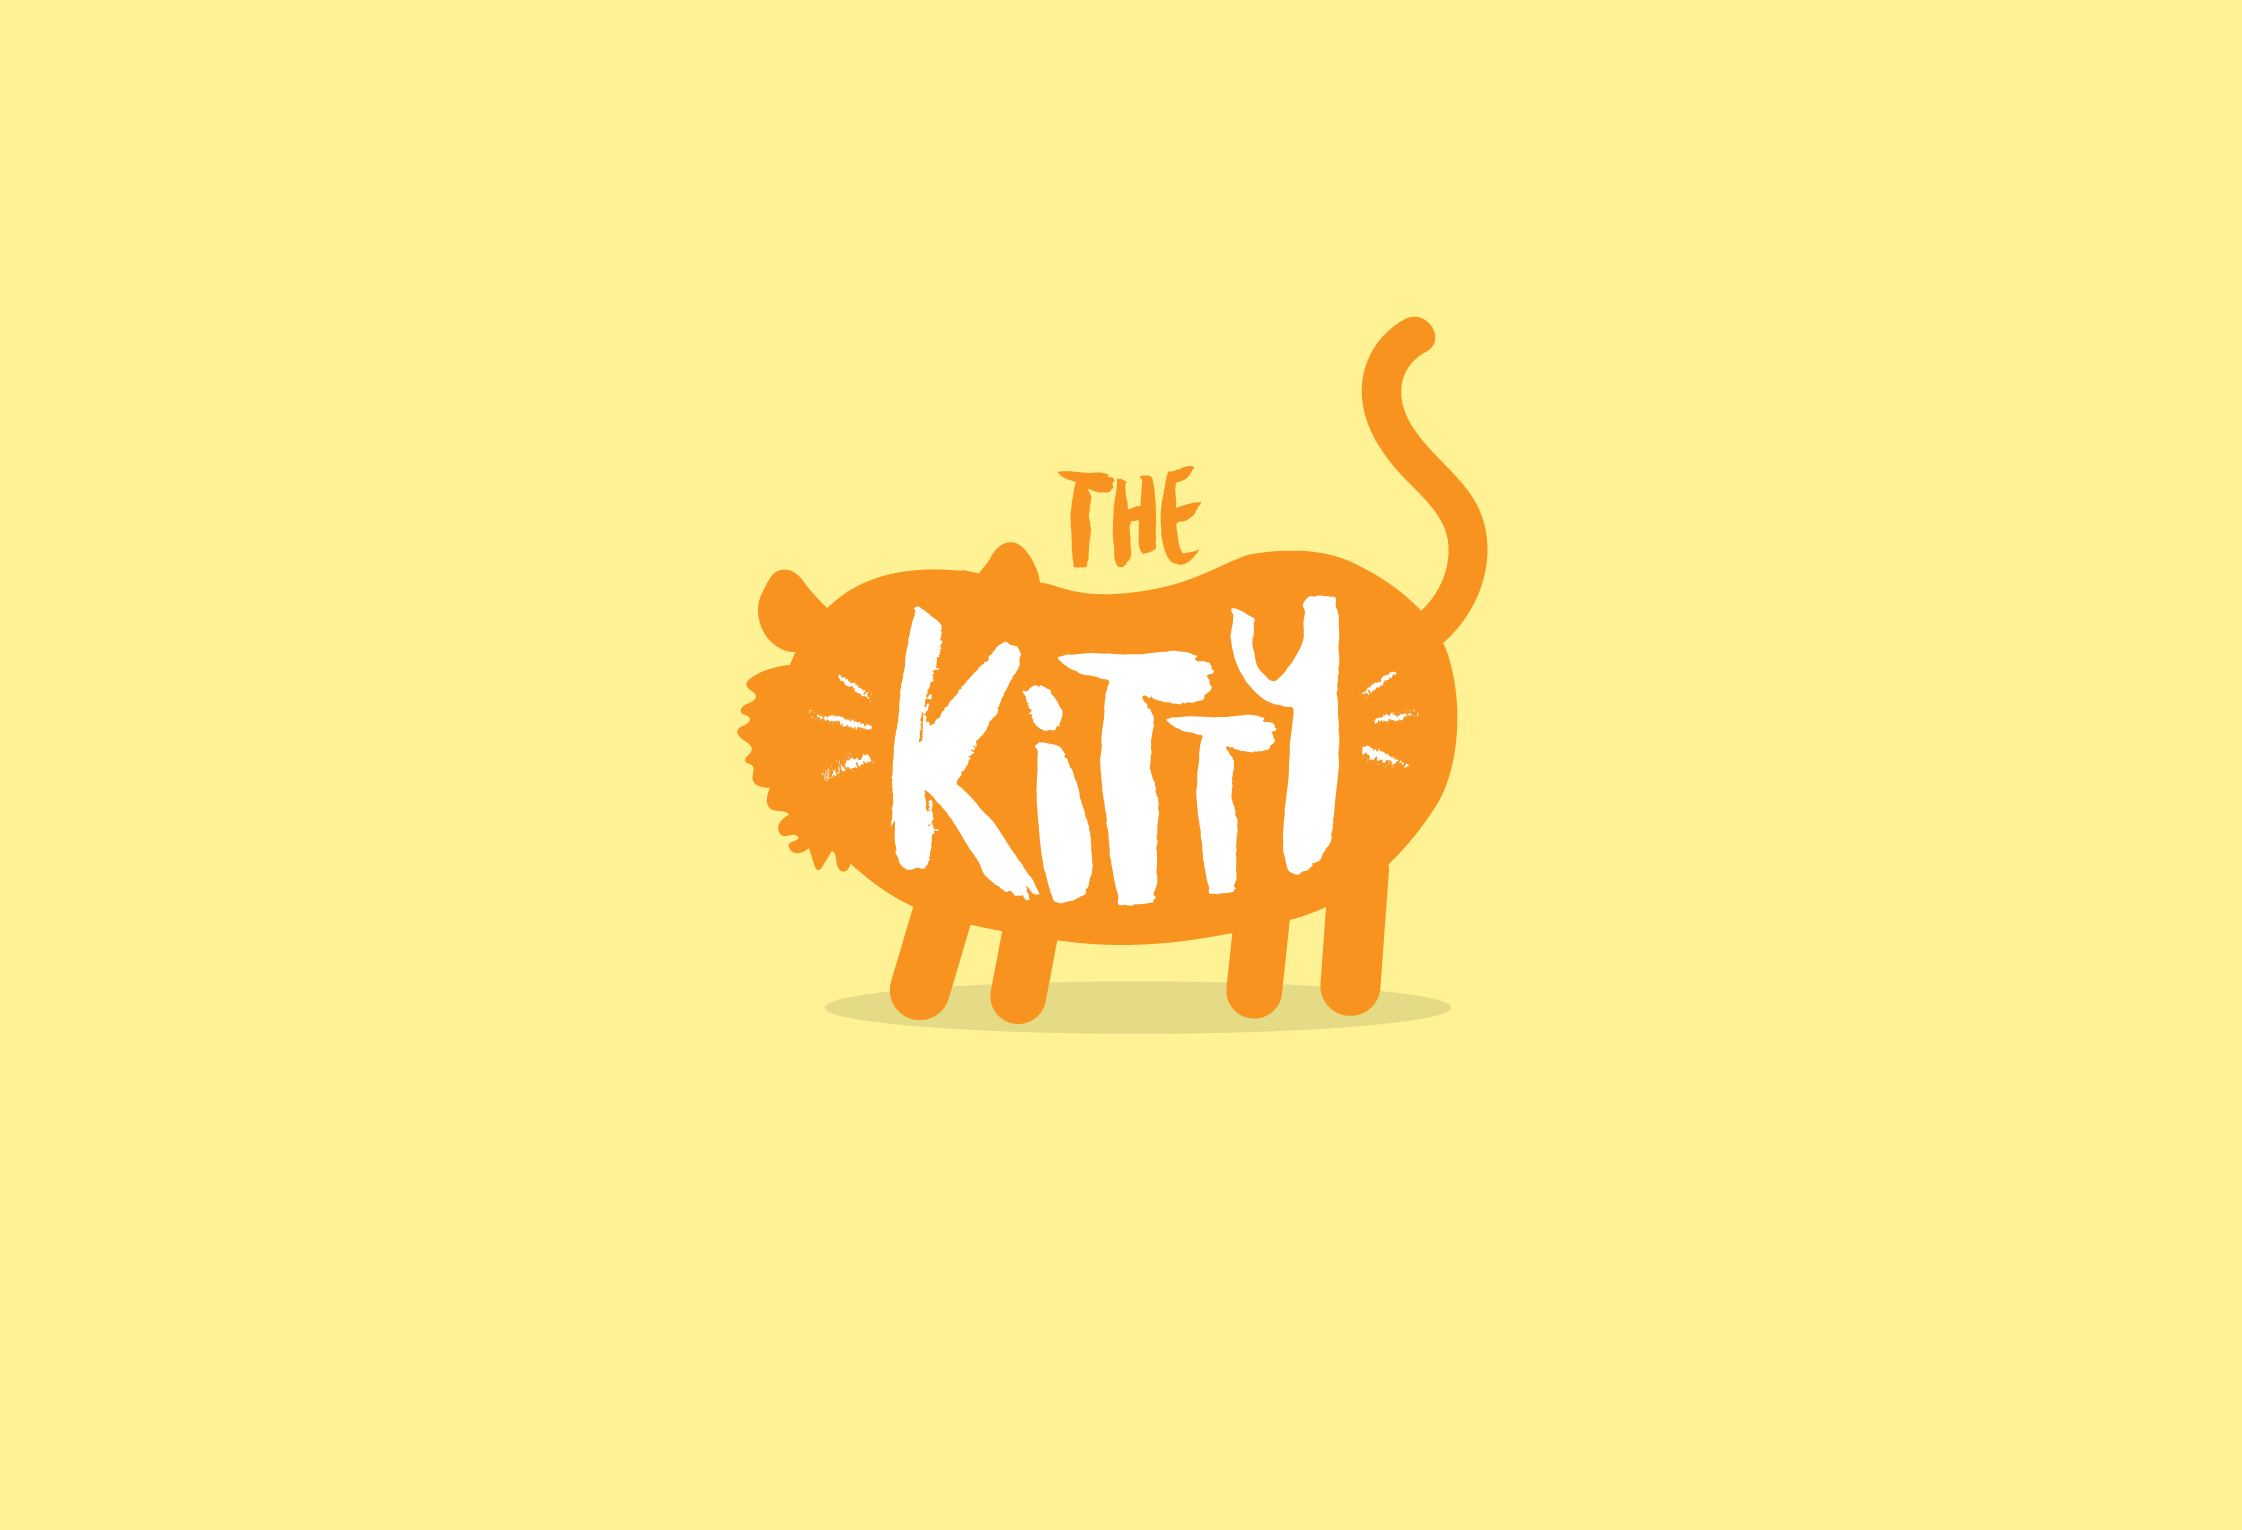 The Kitty